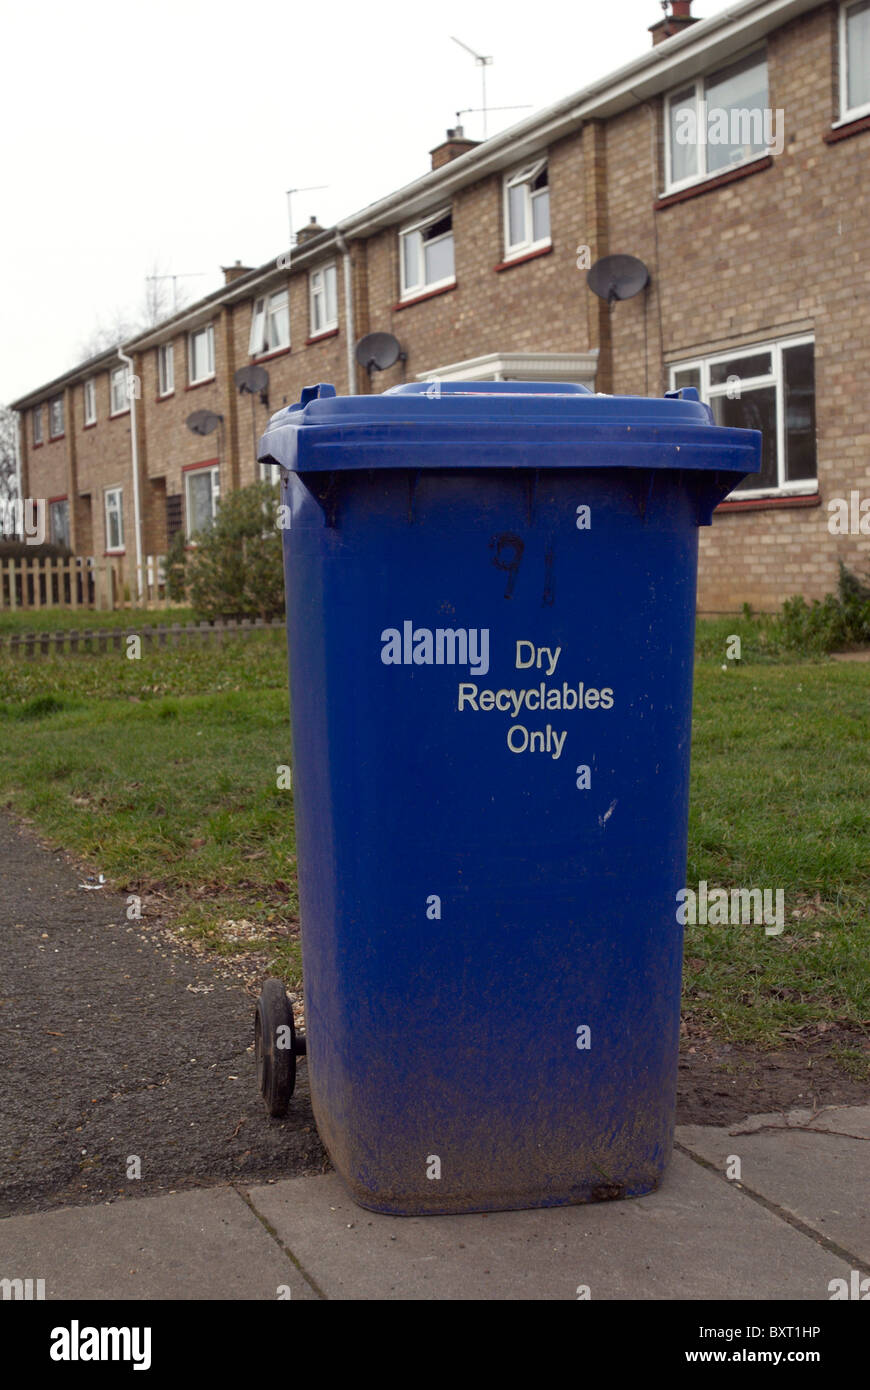 Dry recycables only bin - Stock Image